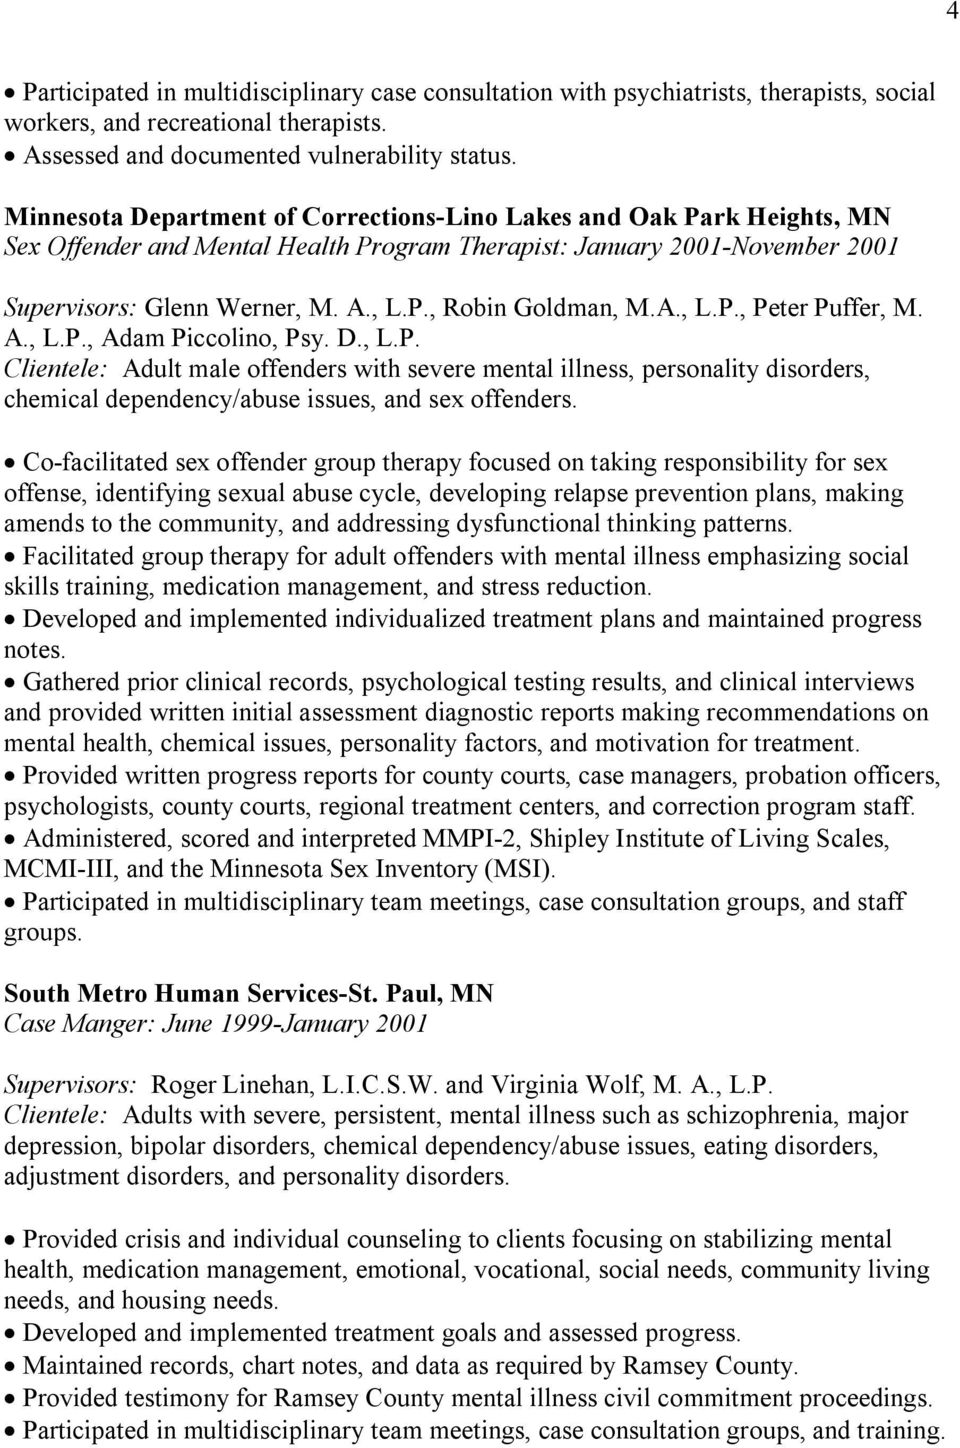 A., L.P., Peter Puffer, M. A., L.P., Adam Piccolino, Psy. D., L.P. Clientele: Adult male offenders with severe mental illness, personality disorders, chemical dependency/abuse issues, and sex offenders.